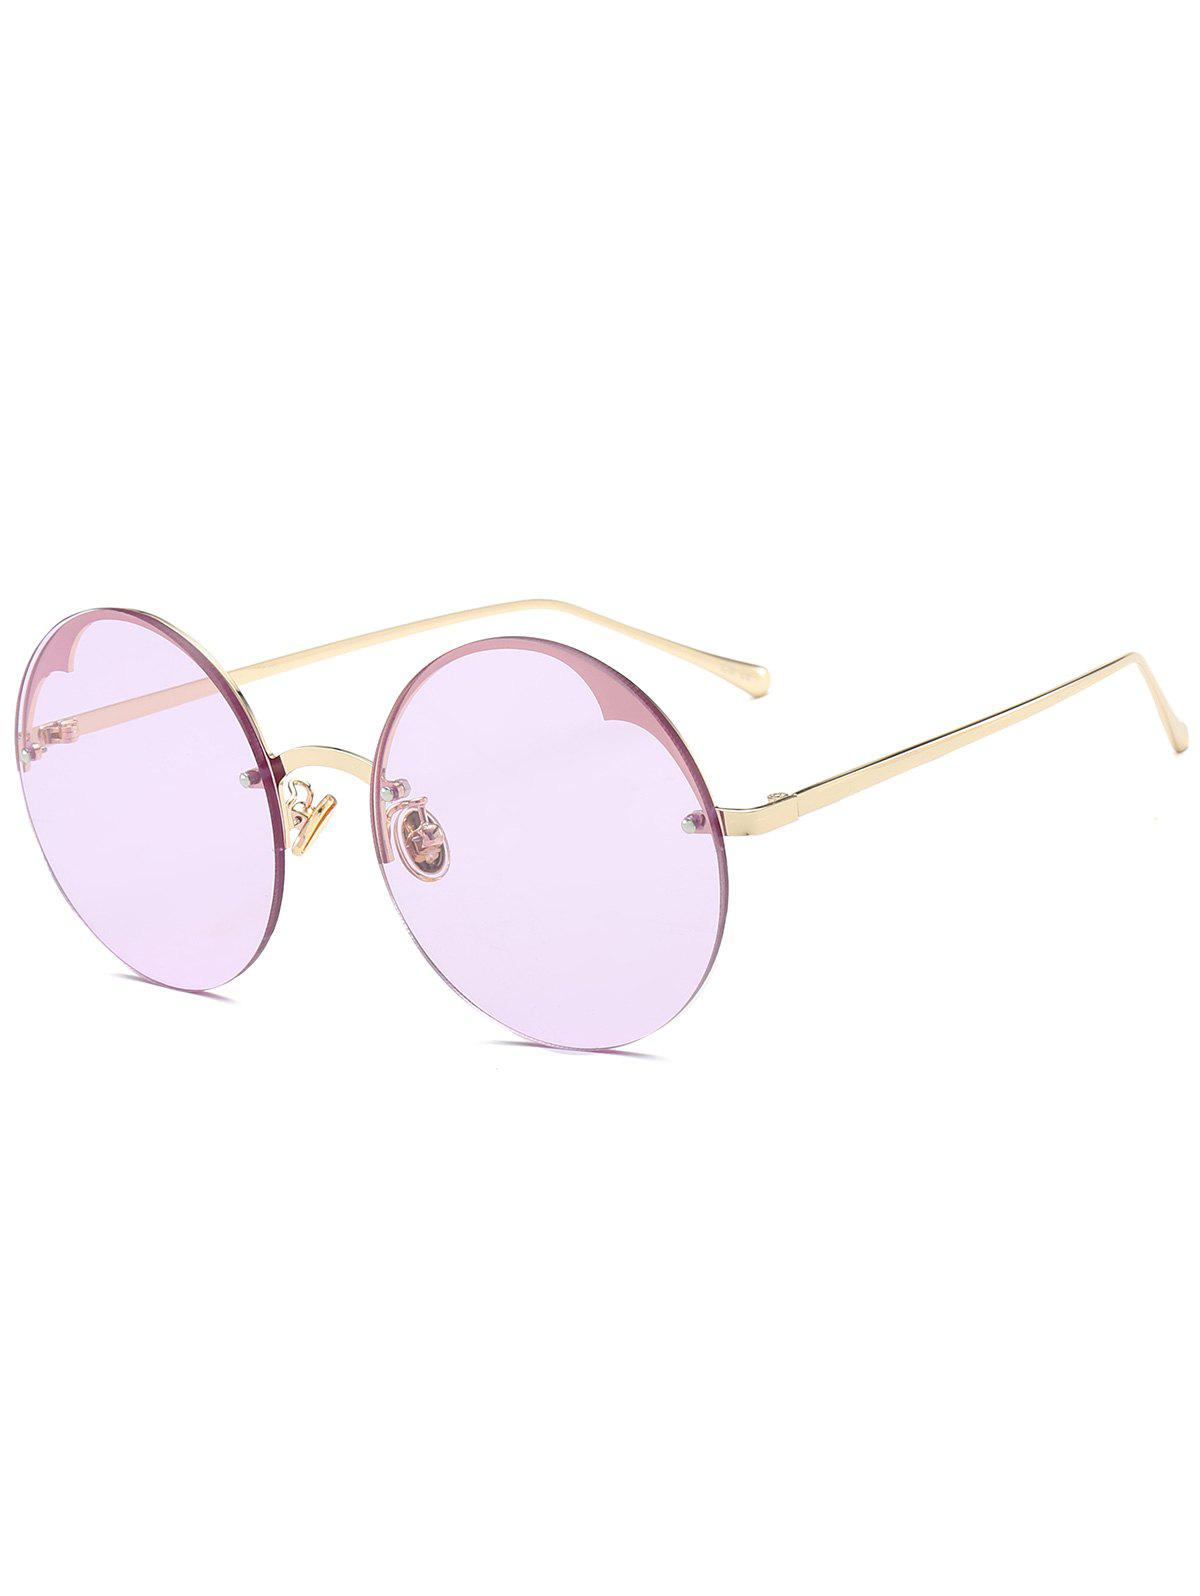 Metal Semi-rimless Round Sunglasses - RADIANT